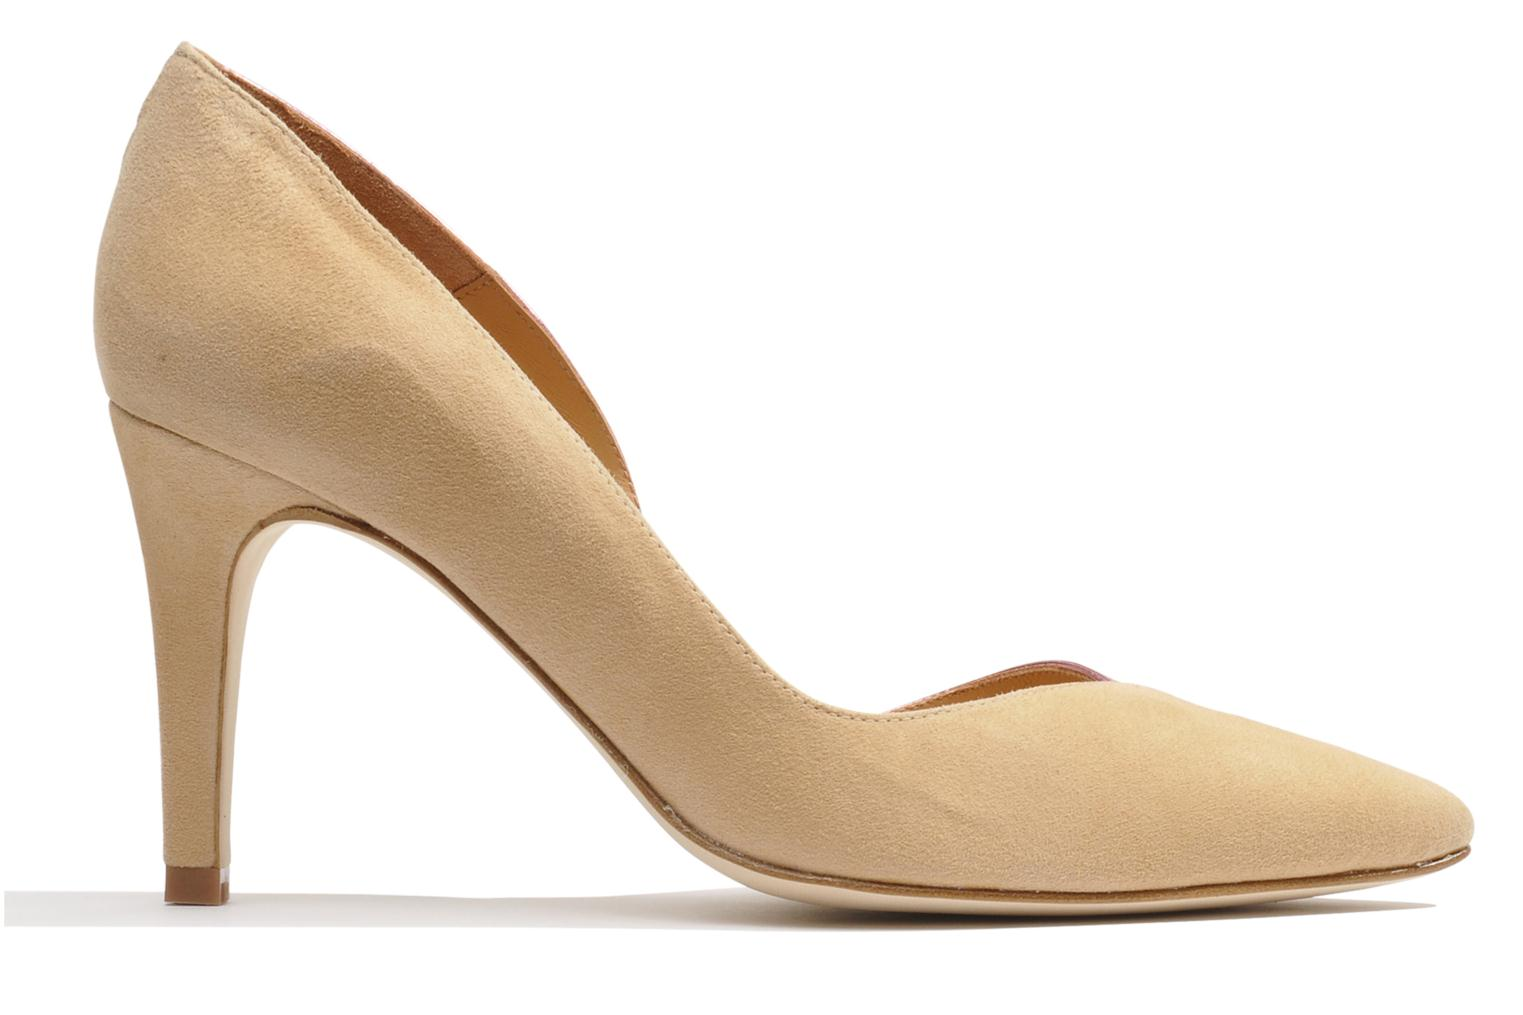 Marques Chaussure femme Made by SARENZA femme Roudoudou #6 Specchio rose gold / Ante Nude 86445